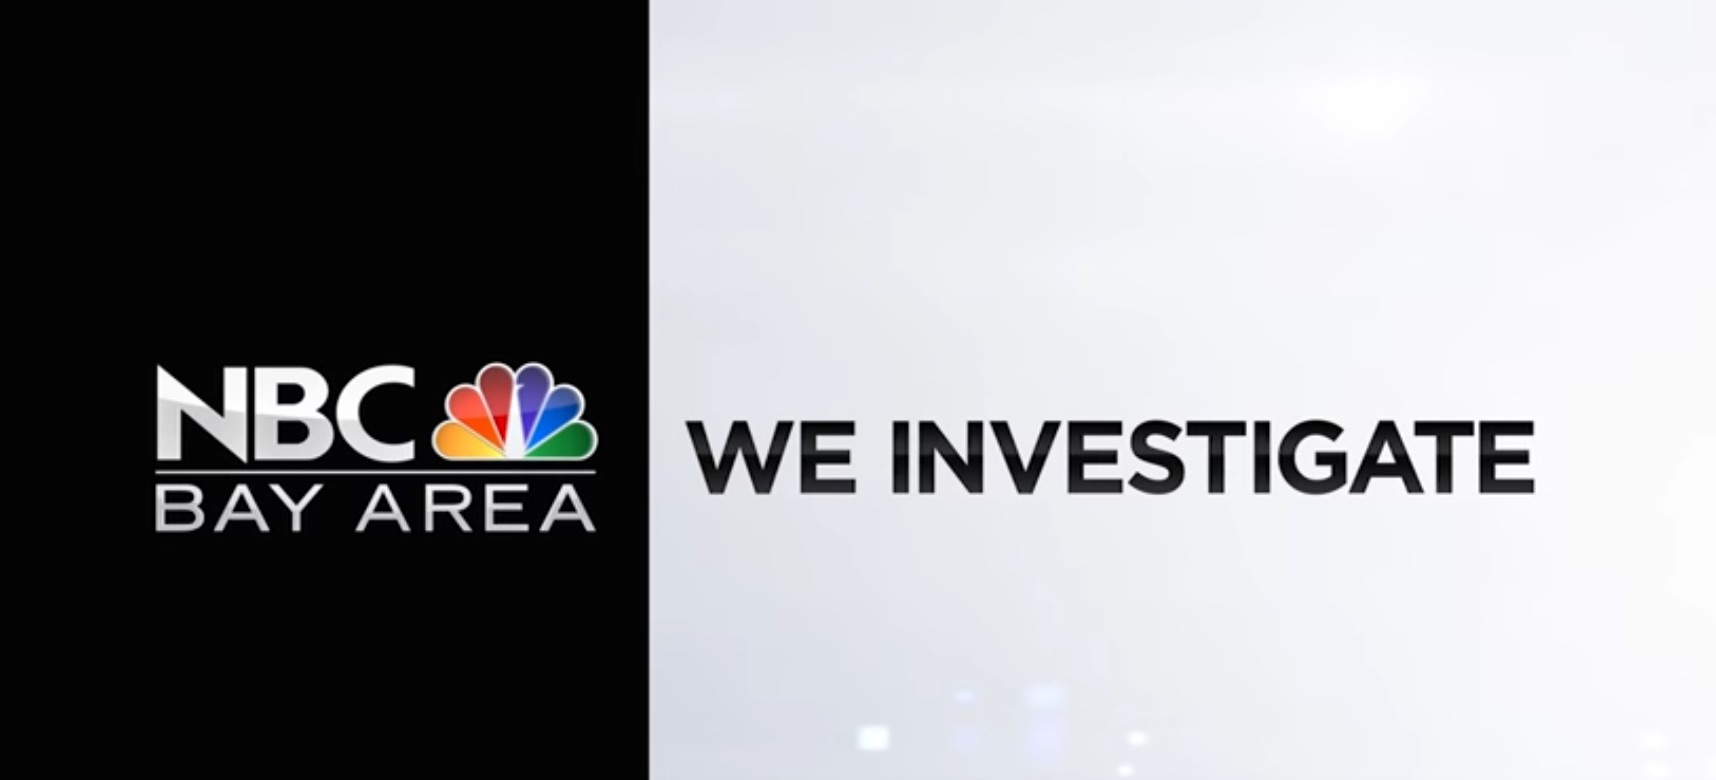 NBC Bay Area – We Investigate